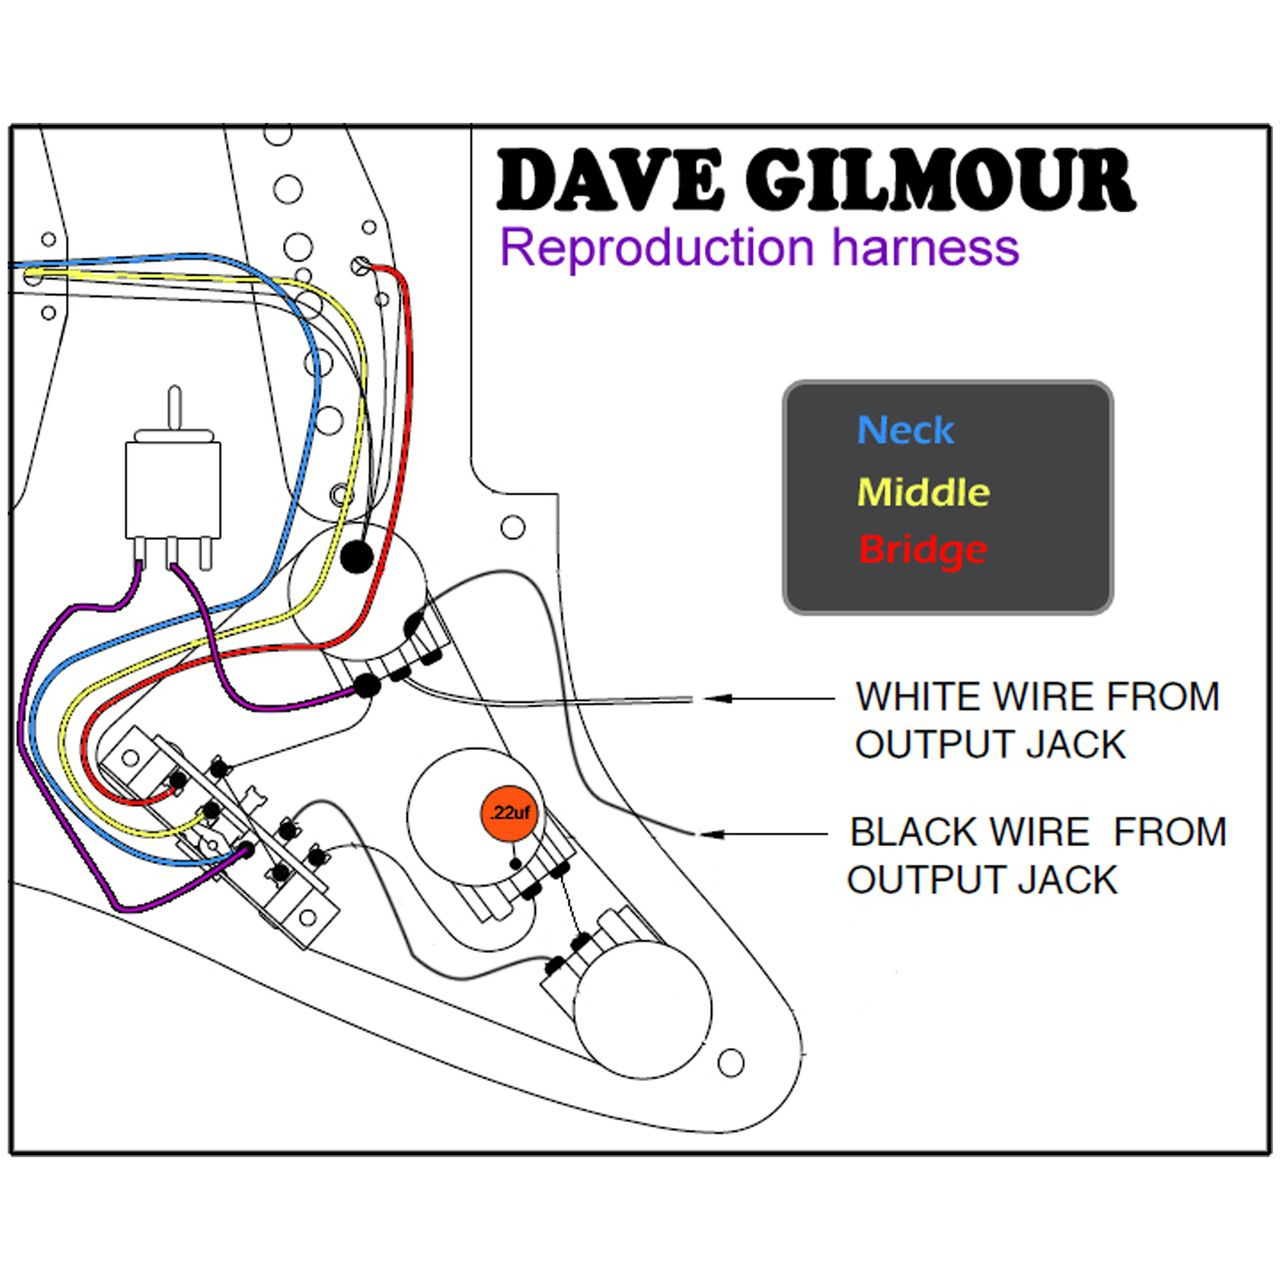 david gilmour strat wiring diagram wiring diagrams best dave gilmour deluxe pre wired stratocaster wiring kit recessed strat humbucker wiring diagram david gilmour strat wiring diagram